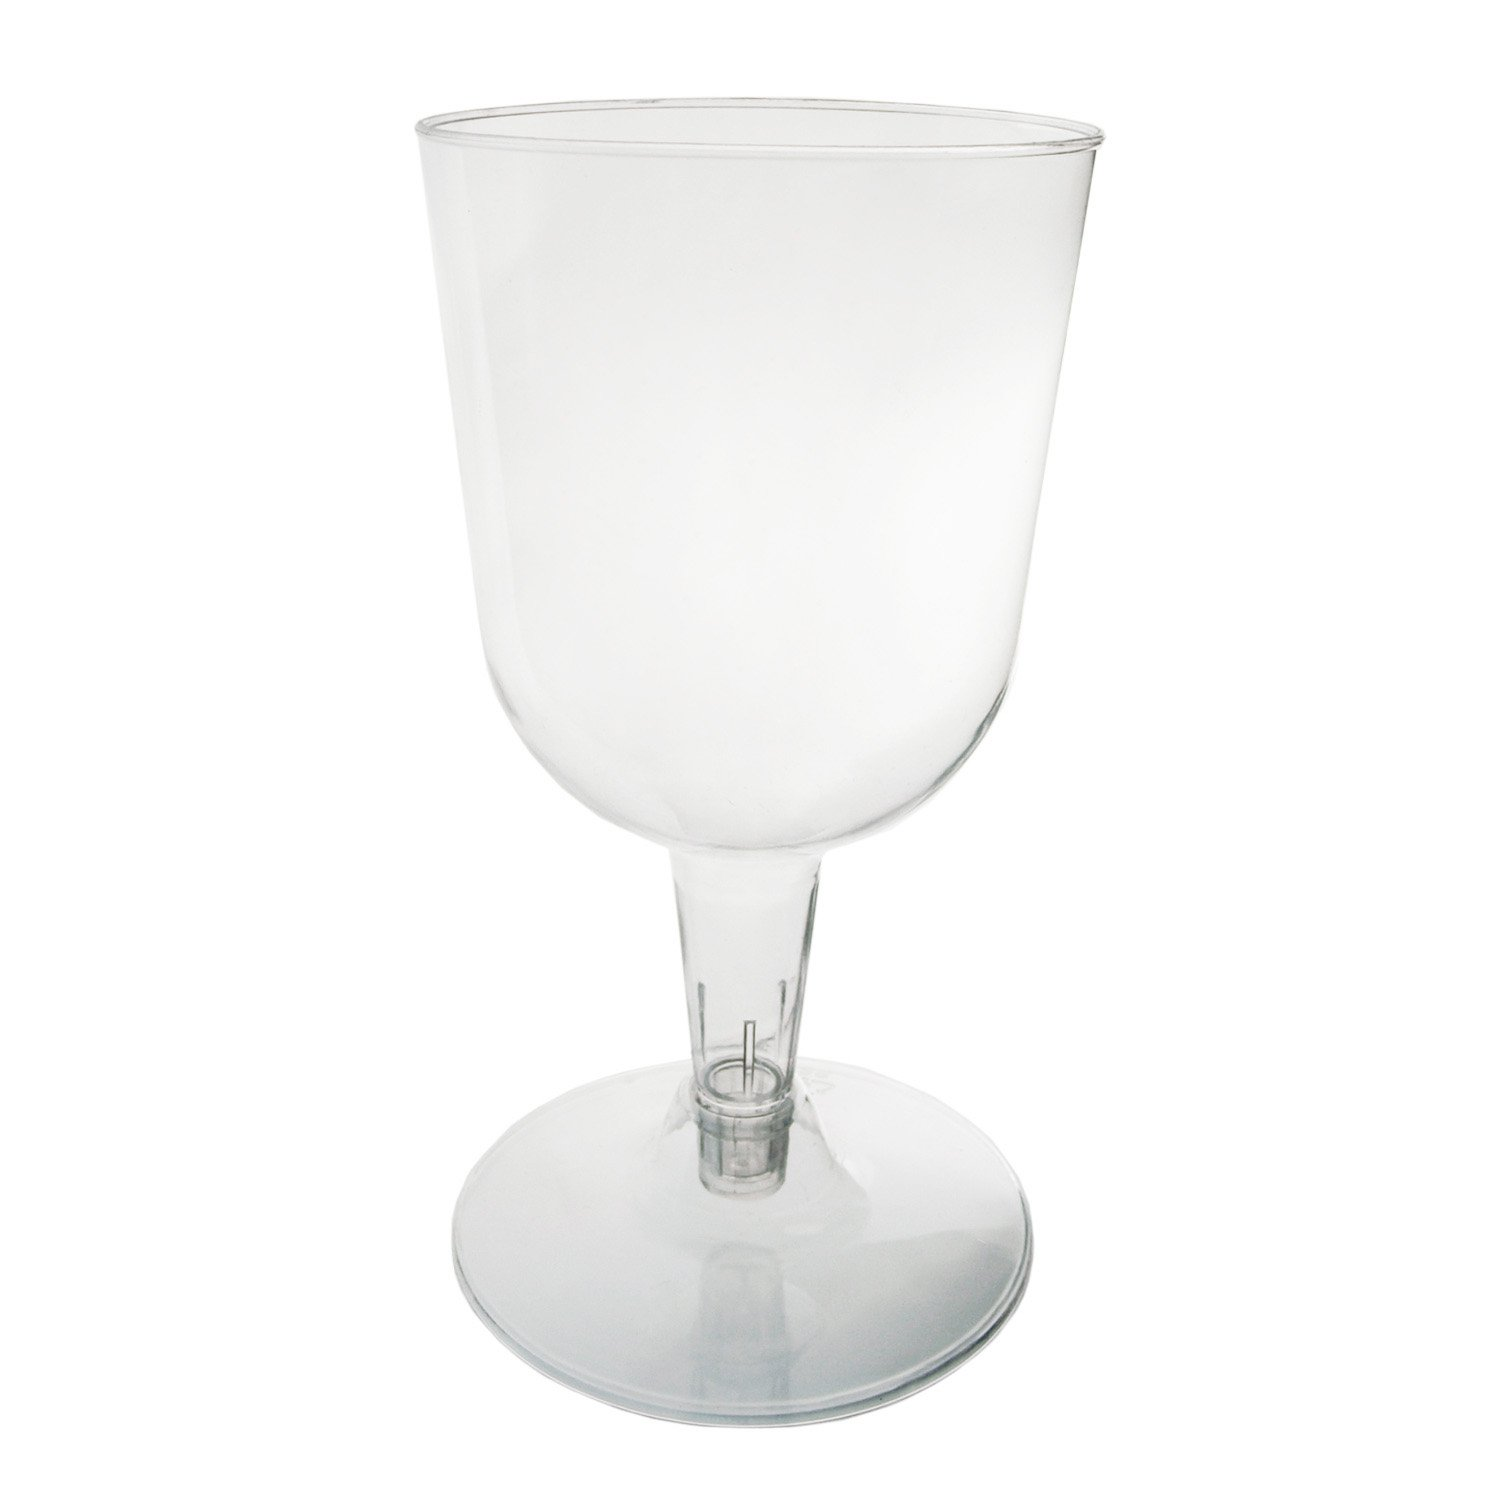 Party Essentials N55021 Hard Plastic 2-Piece Wine Glass, 5.5-Ounce Capacity, Clear (Case of 500) by Party Essentials